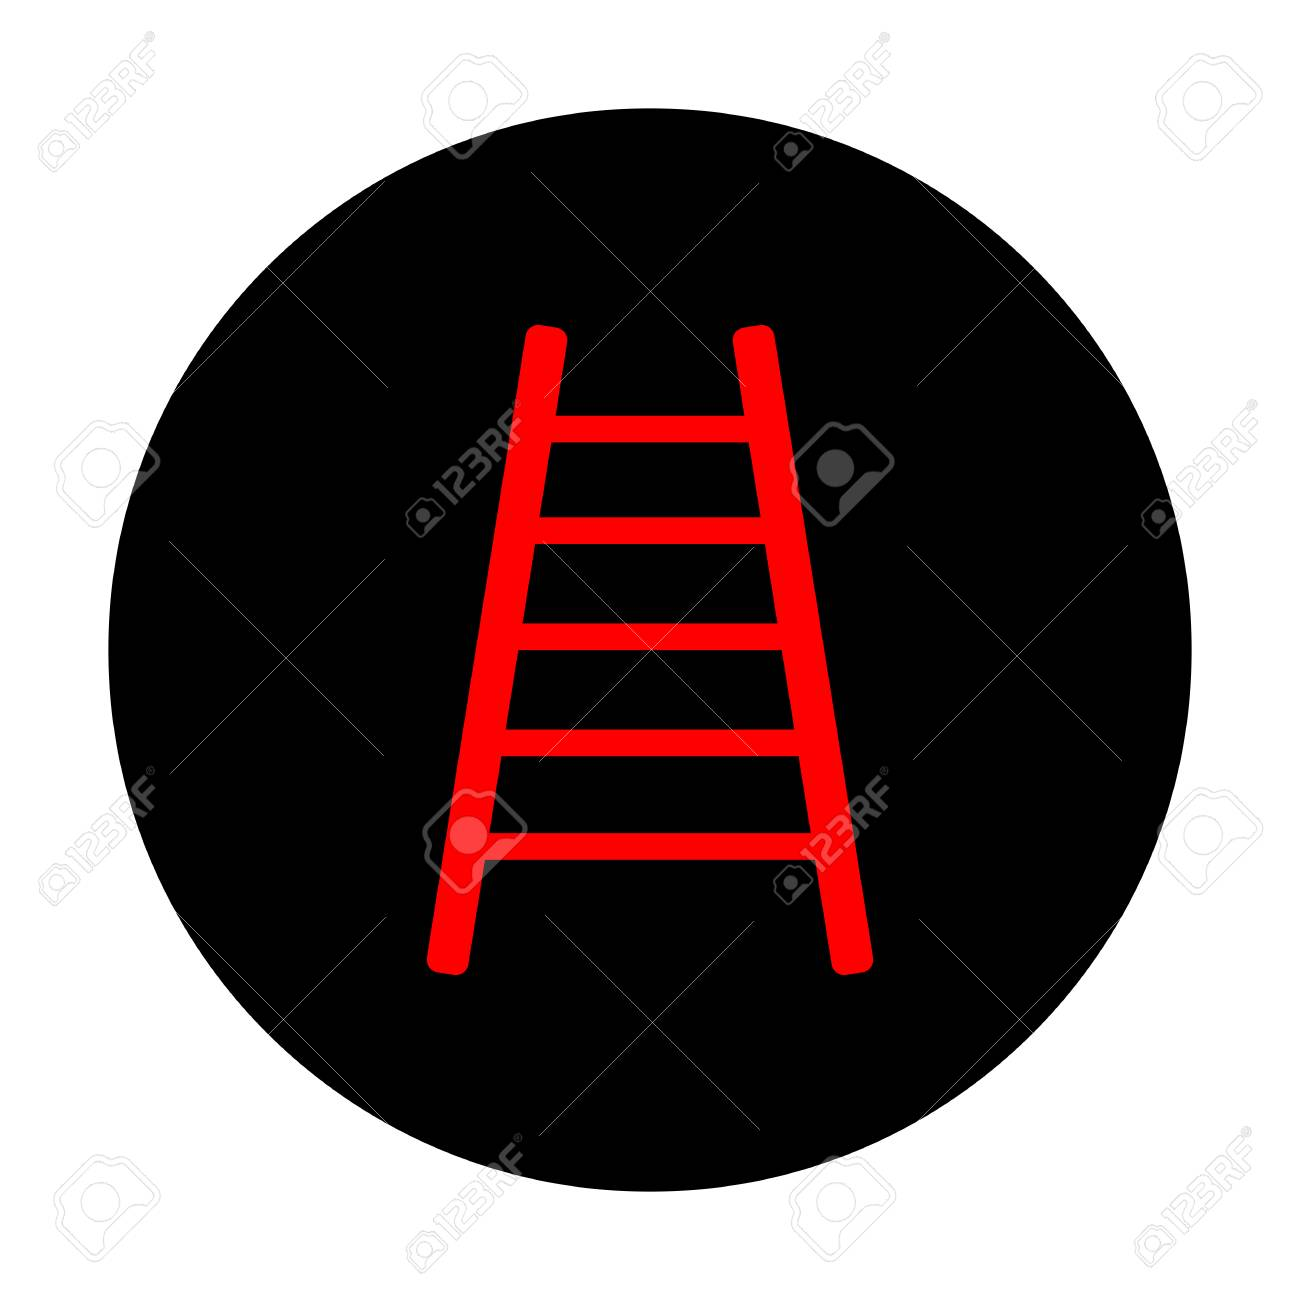 ladder sign. red vector icon on black flat circle. royalty free cliparts,  vectors, and stock illustration. image 56672796.  123rf